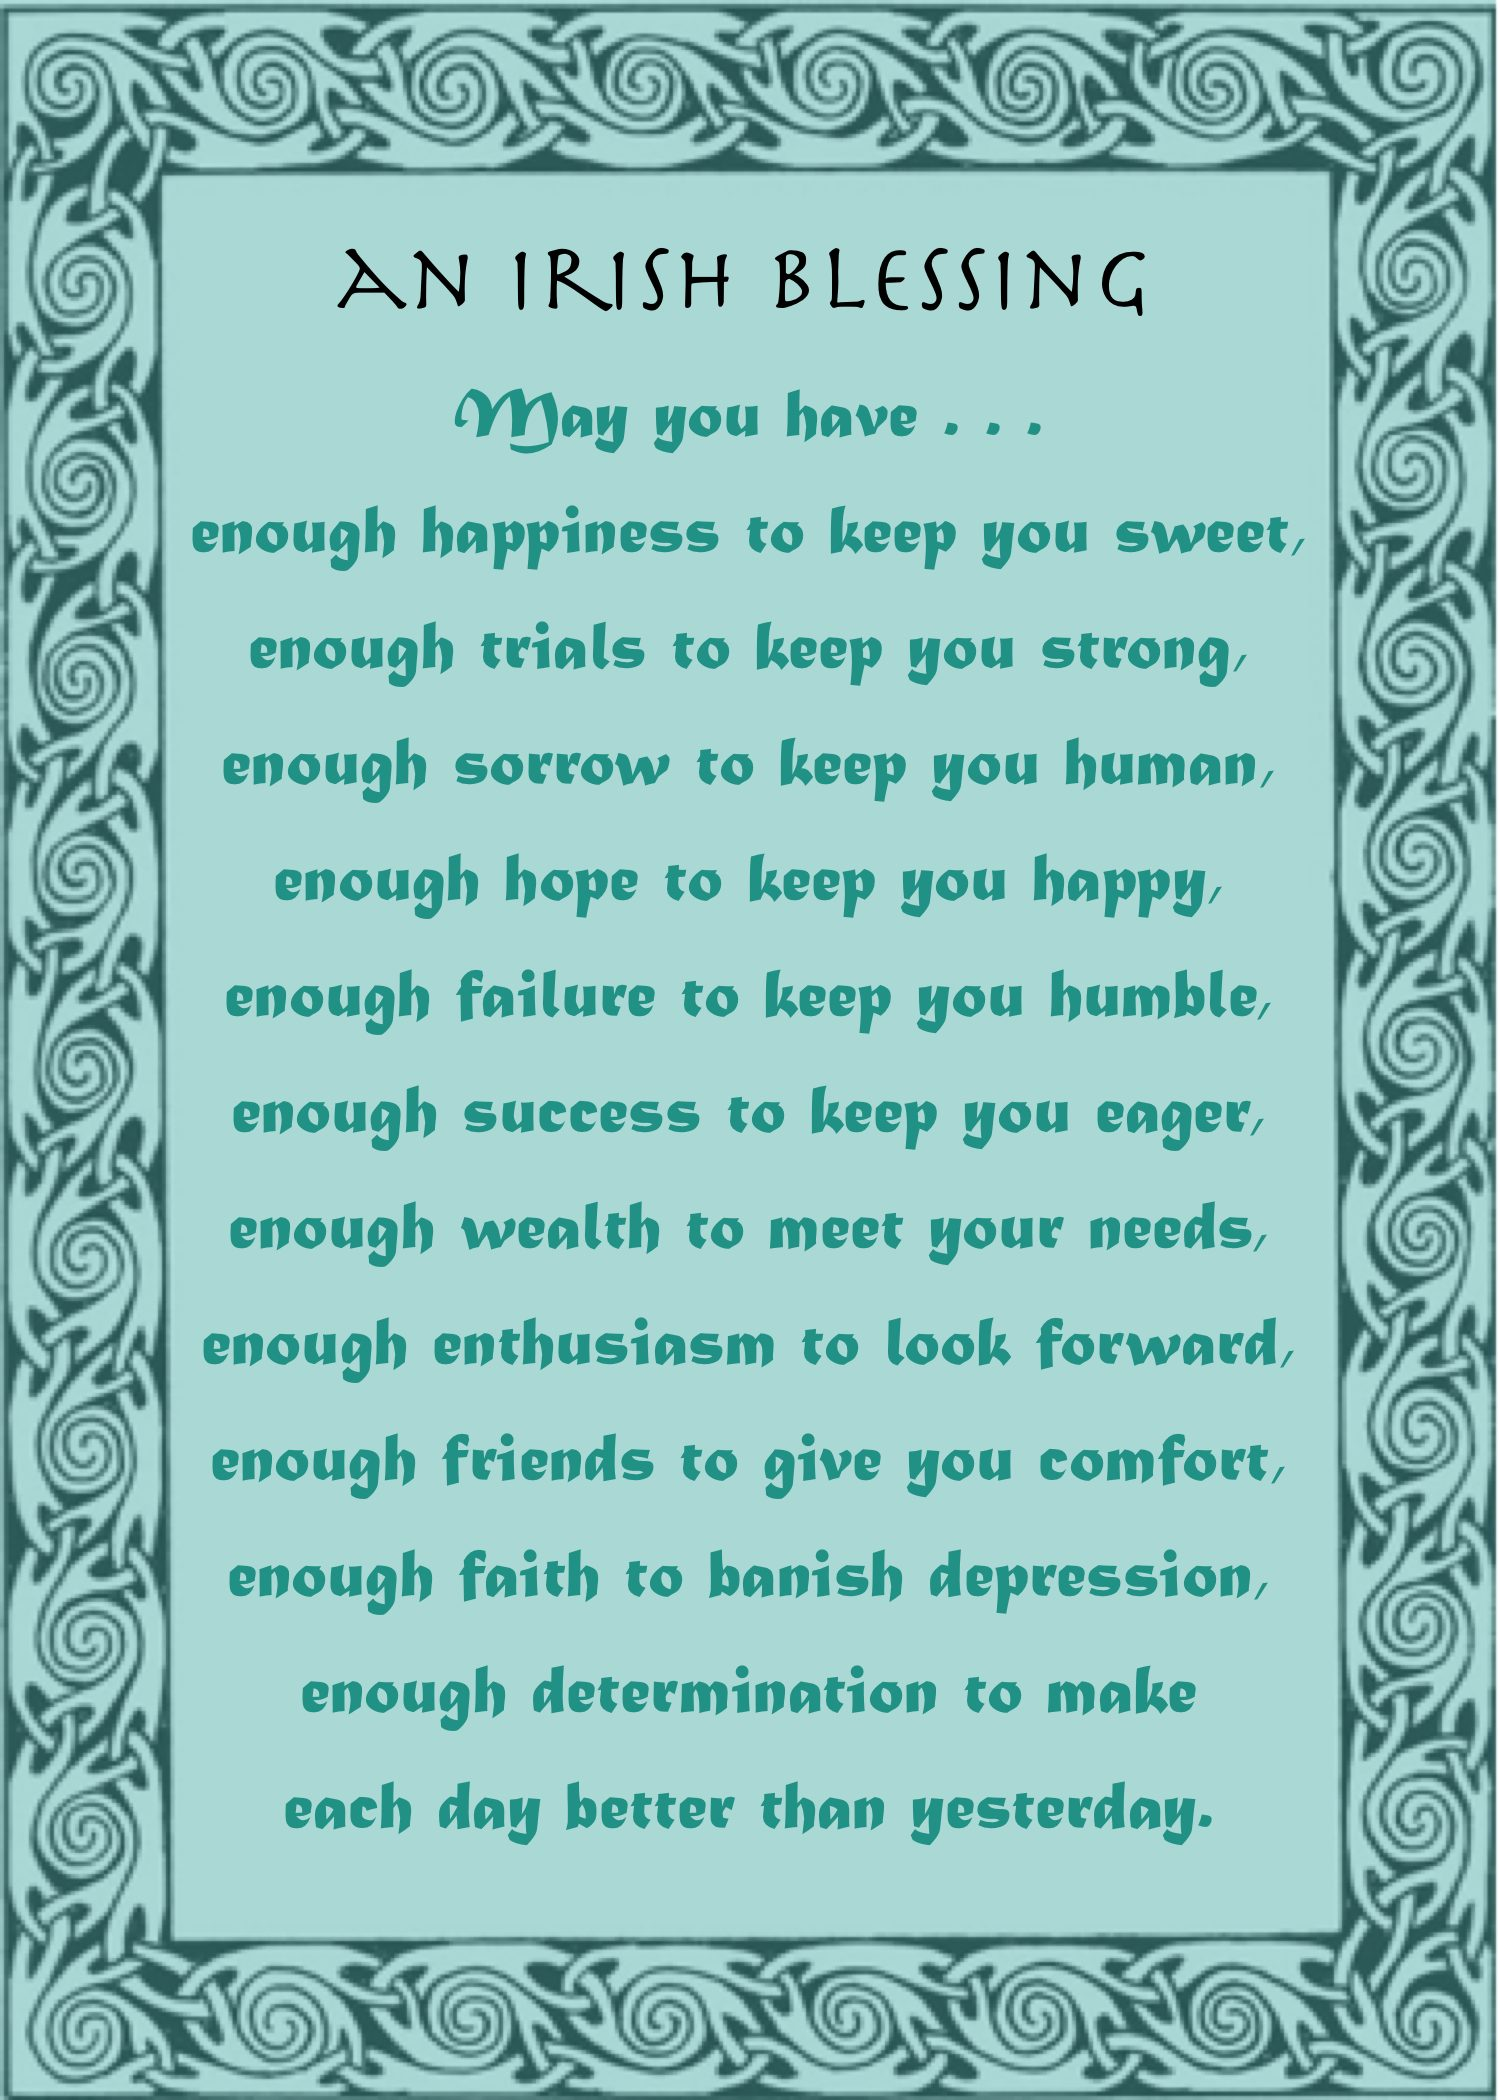 Irish Blessing May You Have Enough Happiness Well Wishers Group